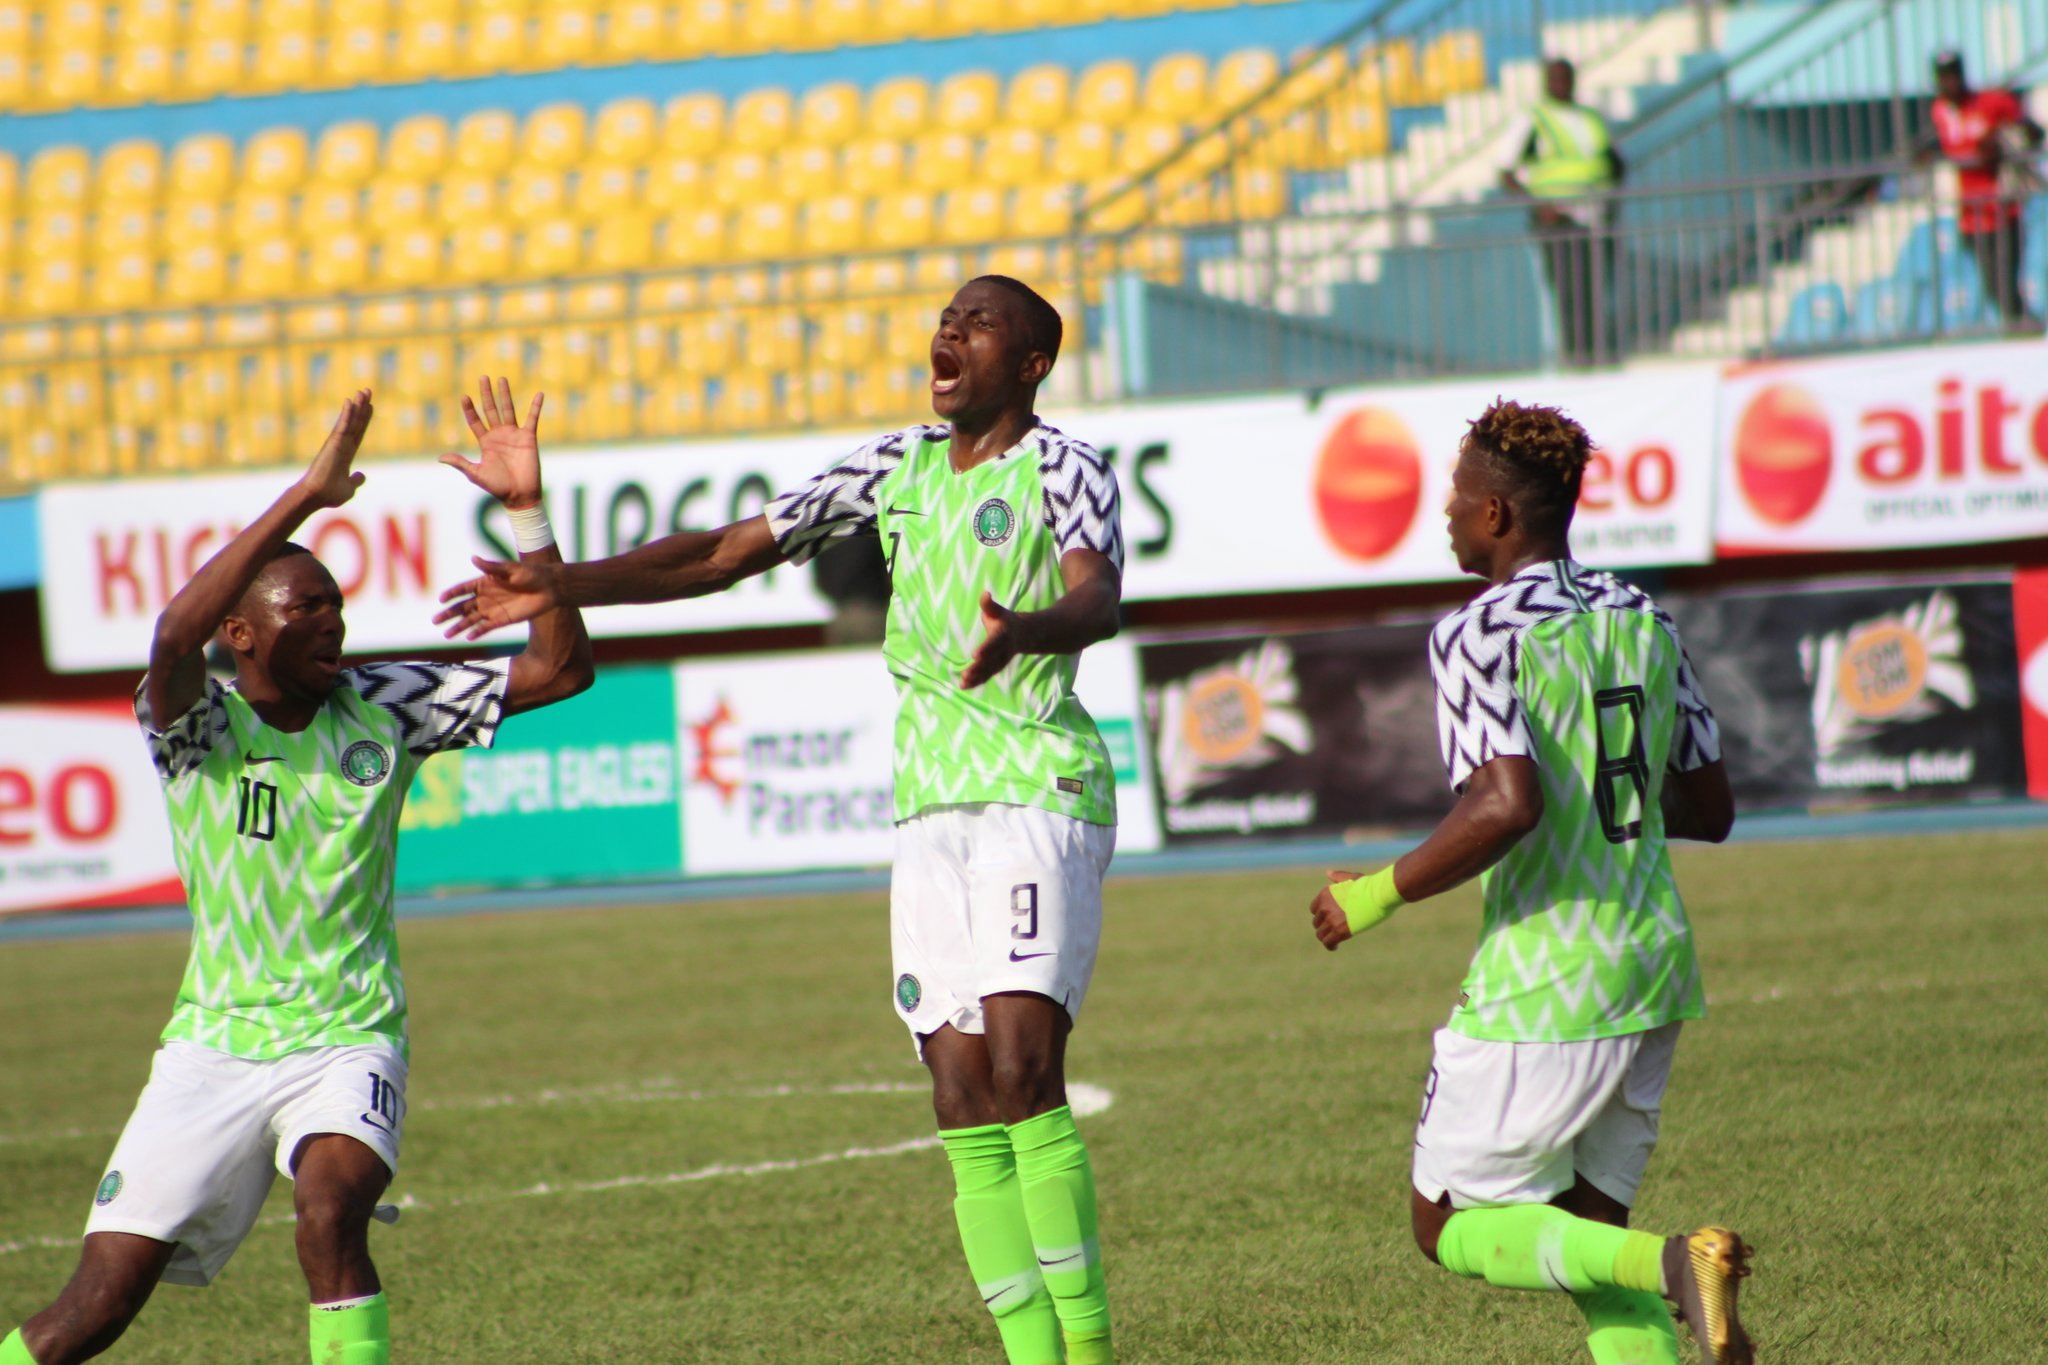 U-23 AFCON Qualifiers: Osimhen Bags Hat-Trick As U-23 Eagles Maul Libya 4-0 In Asaba, Advance To Final Round On 4-2  Aggregate